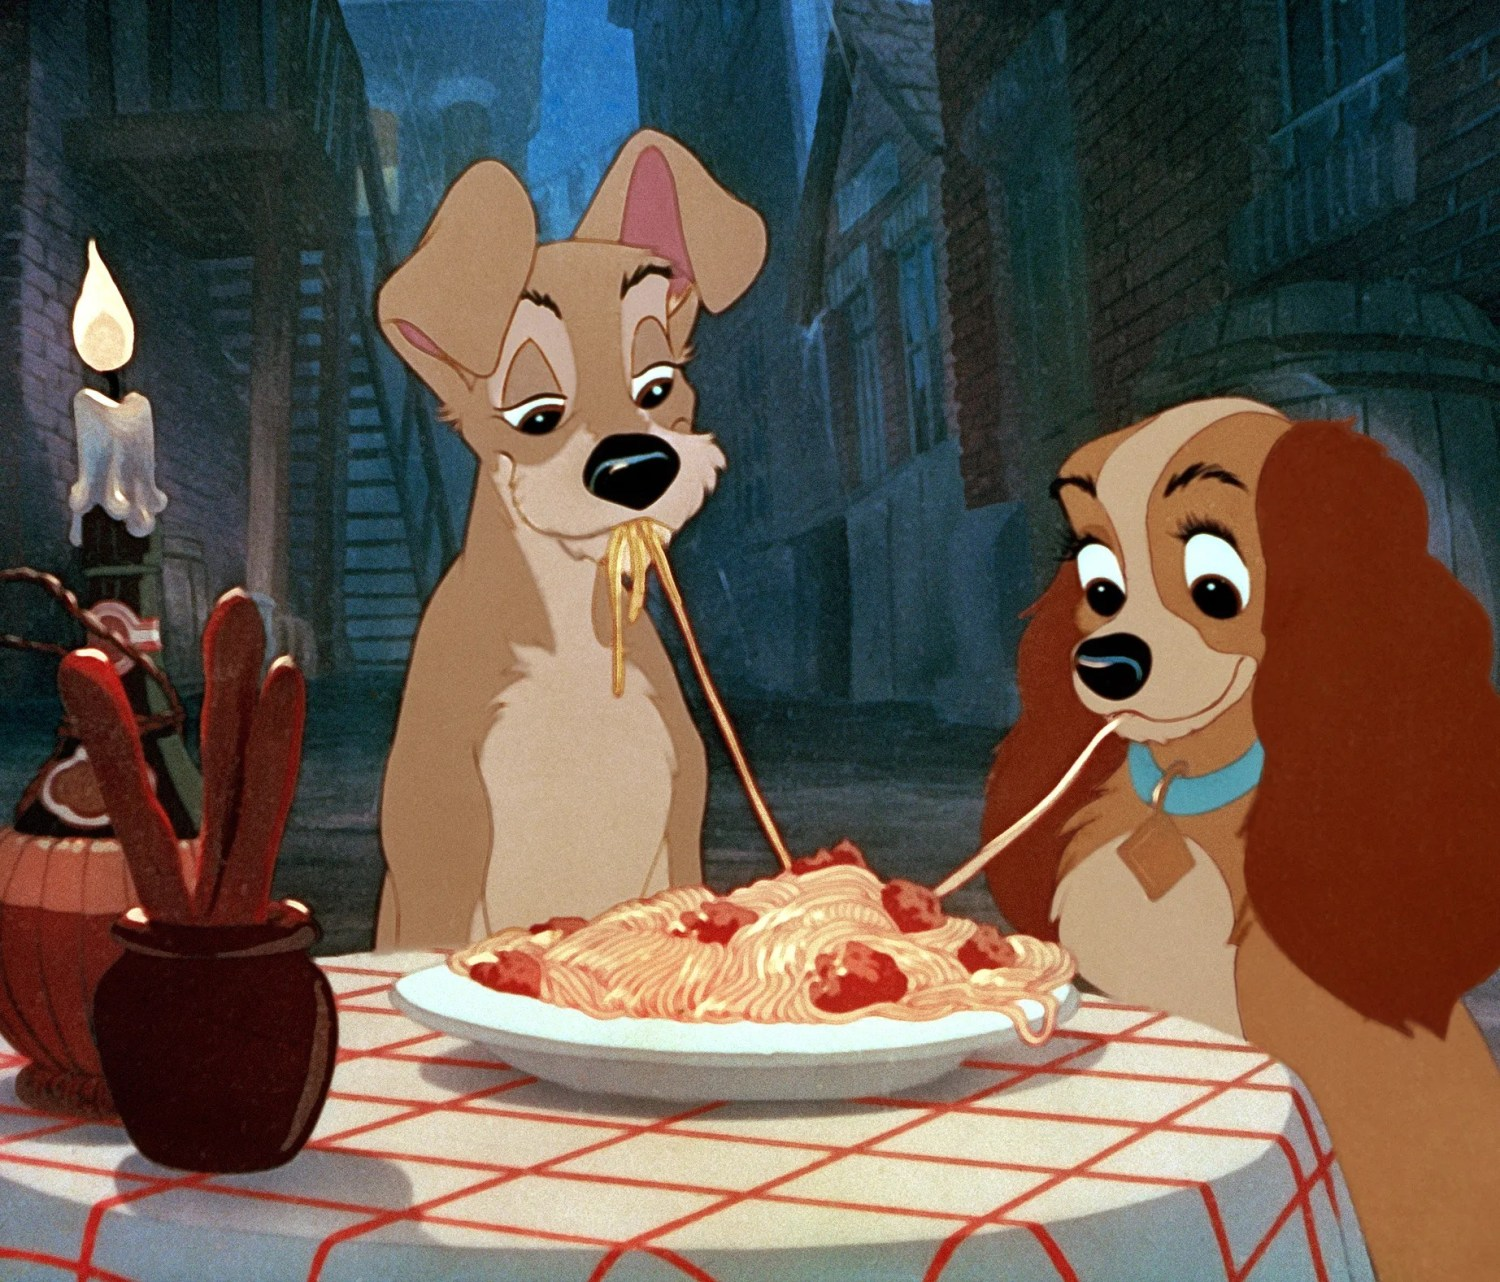 Lady and the Tramp from Lady and the Tramp